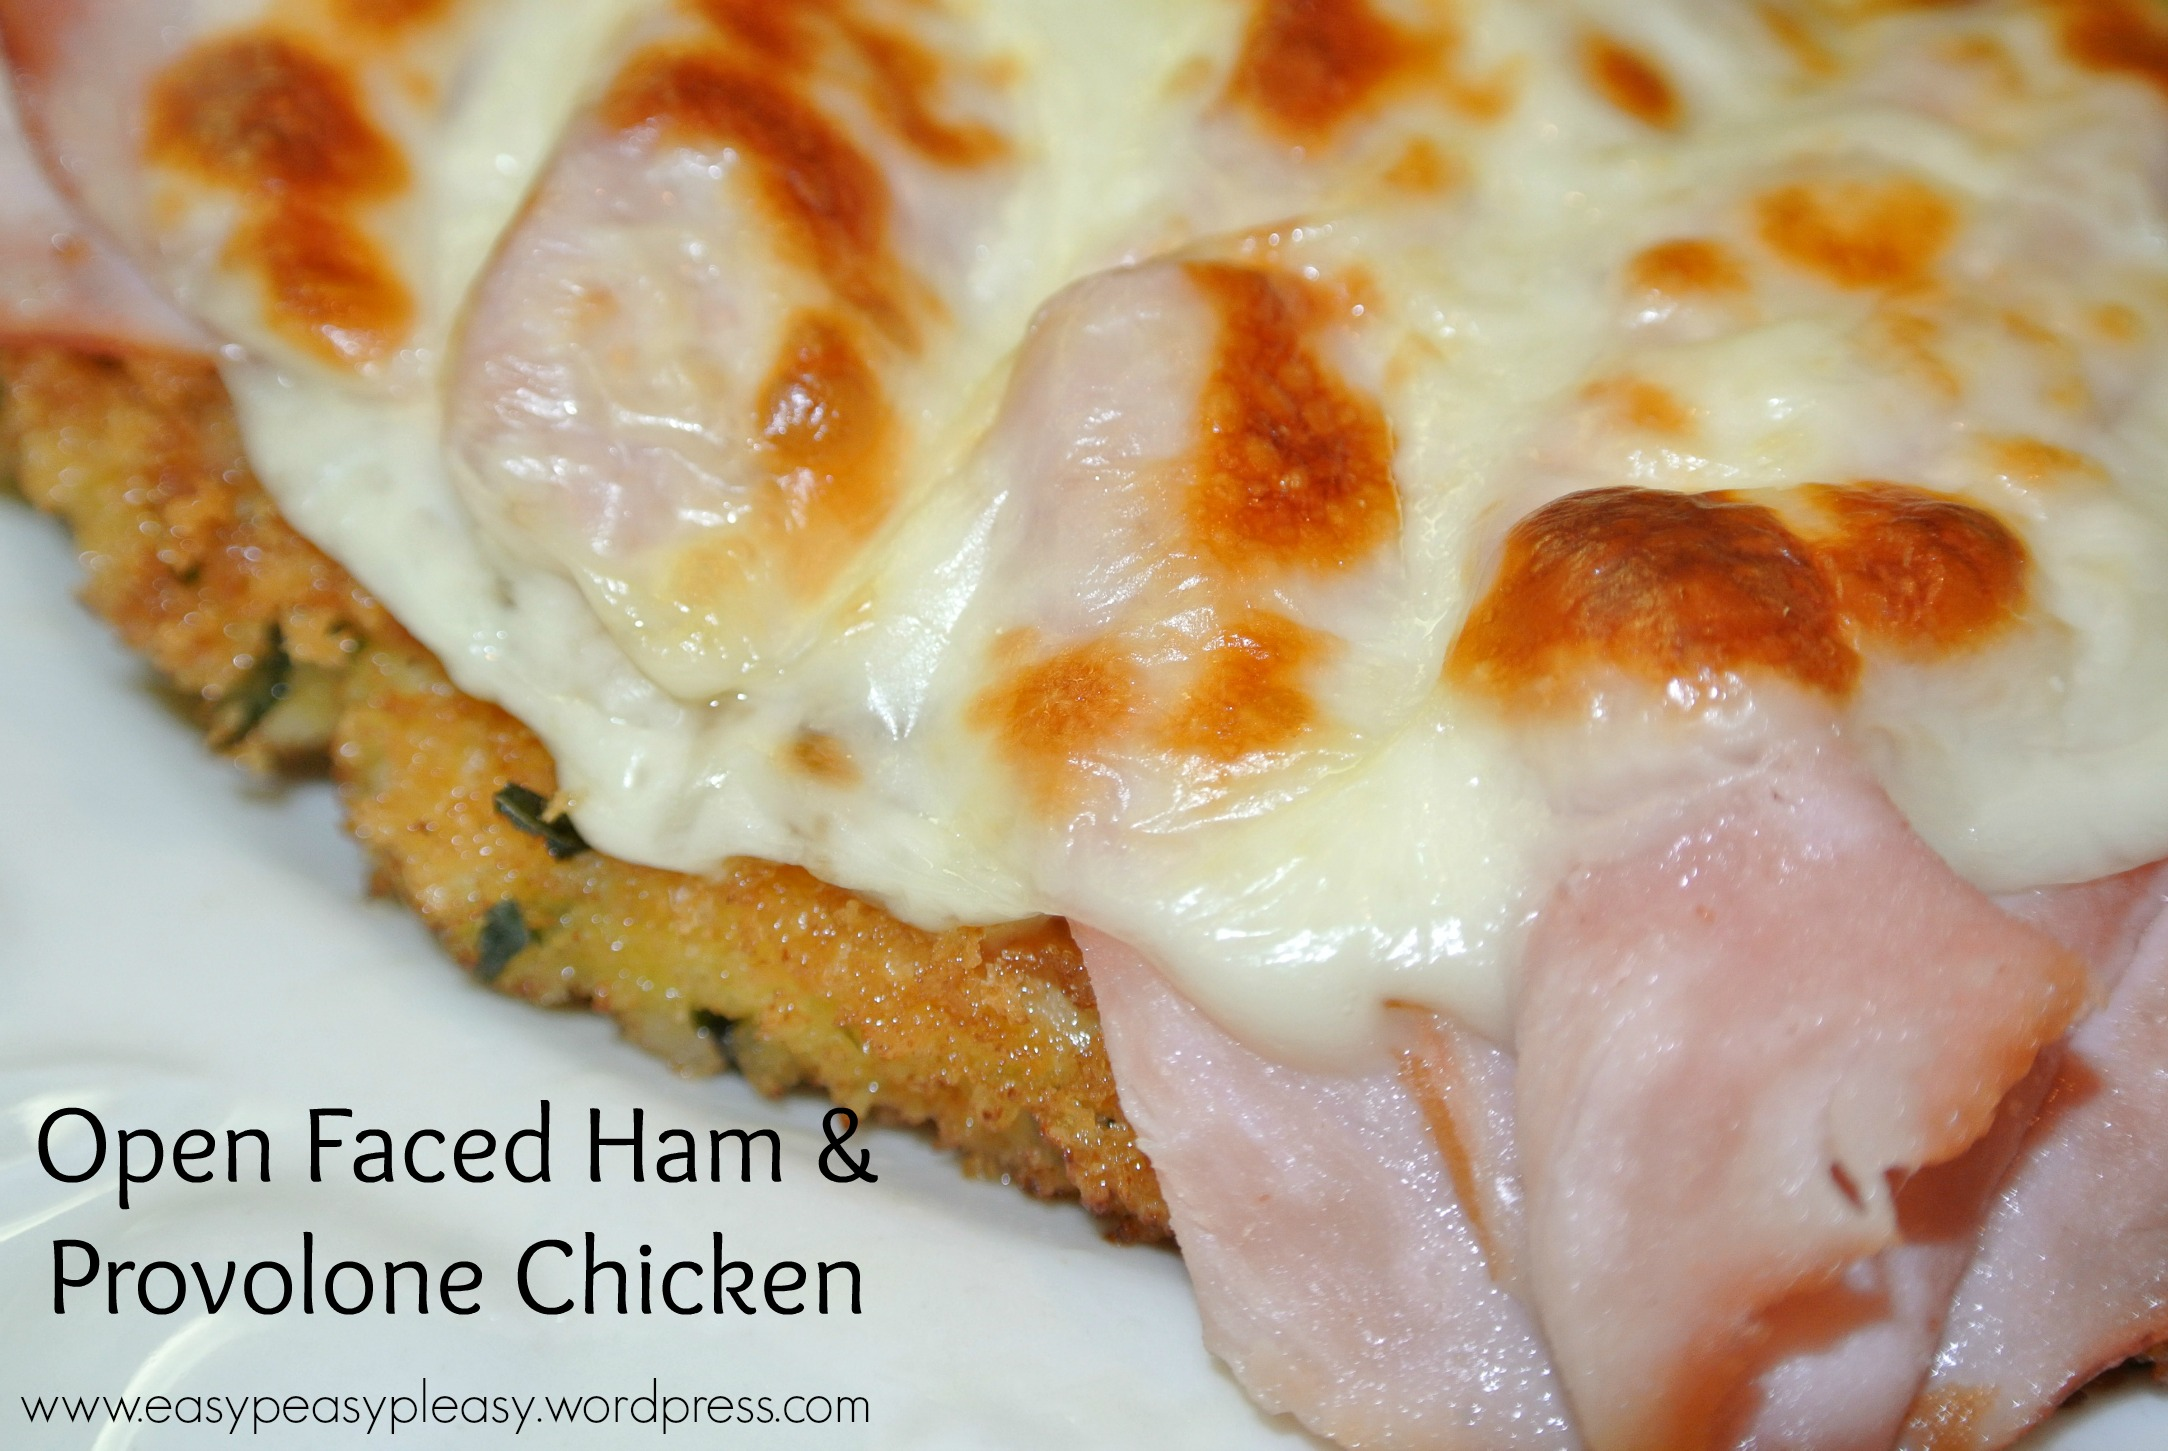 Opened Faced Ham and Provolone Chicken as a Double Duty Chicken Recipe at www.easypeasypleasy.wordpress